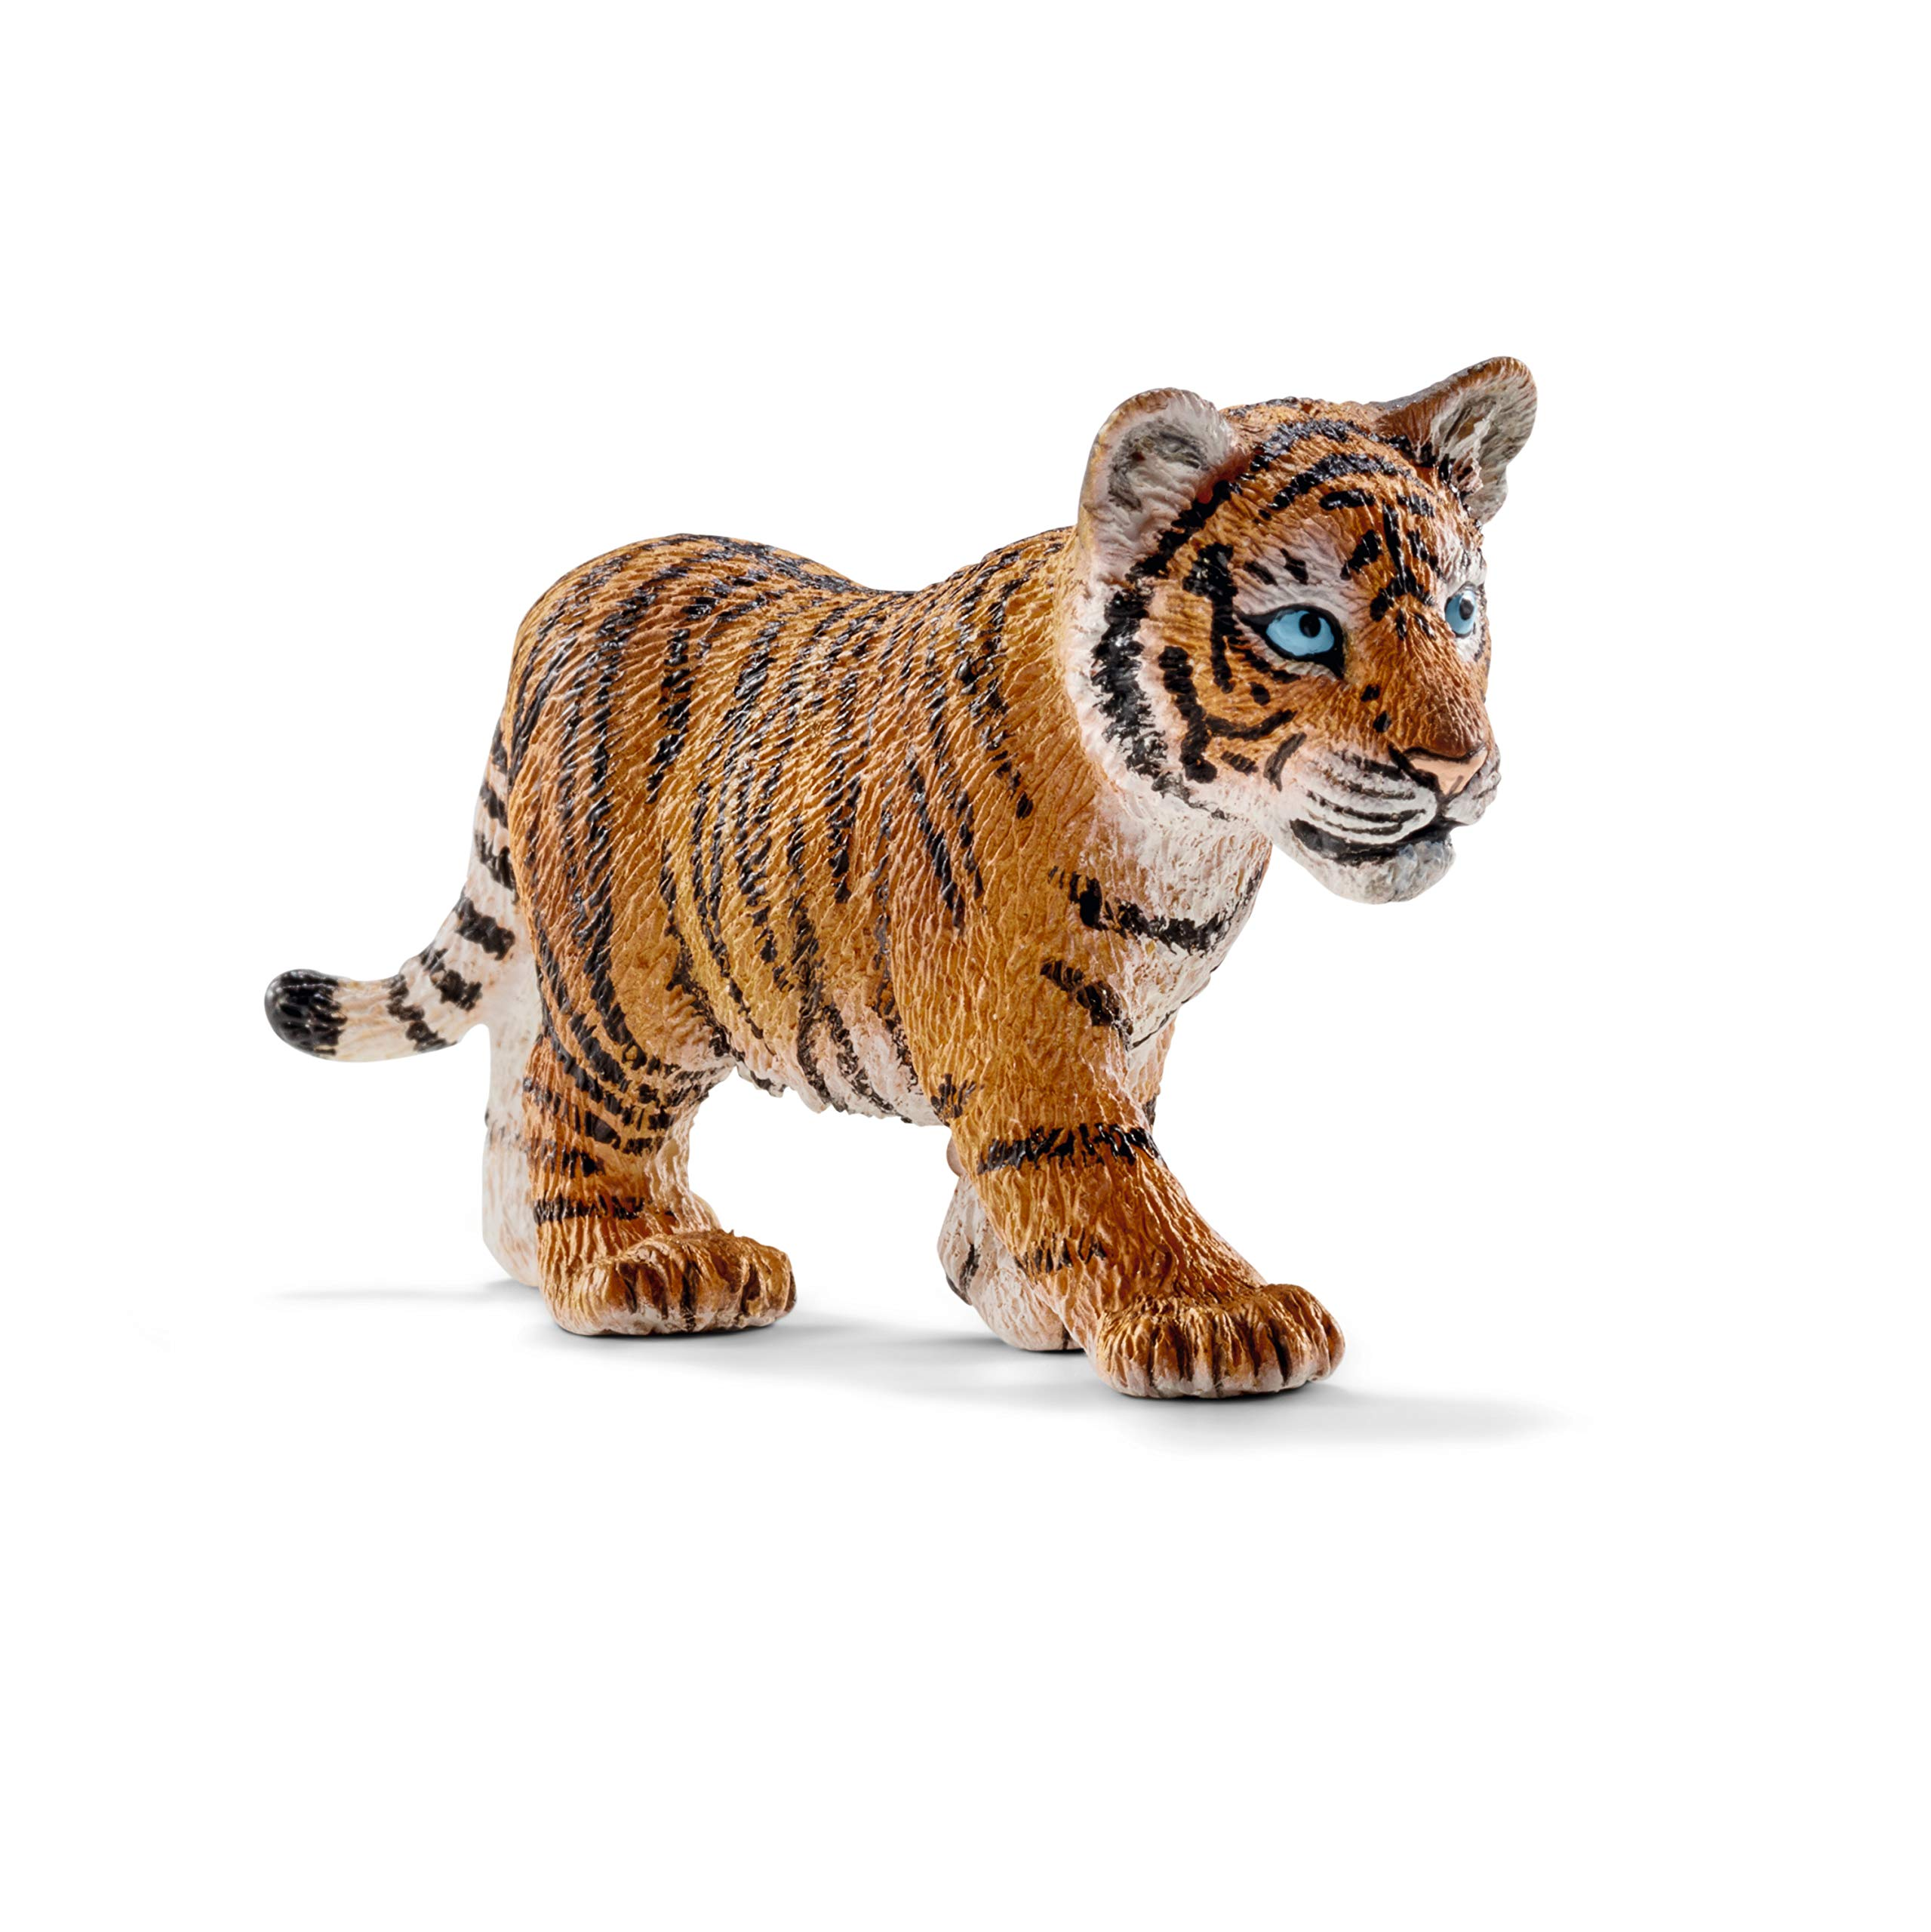 Schleich Wild Life, Animal Figurine, Animal Toys for Boys and Girls 3-8 years old, Tiger Cub